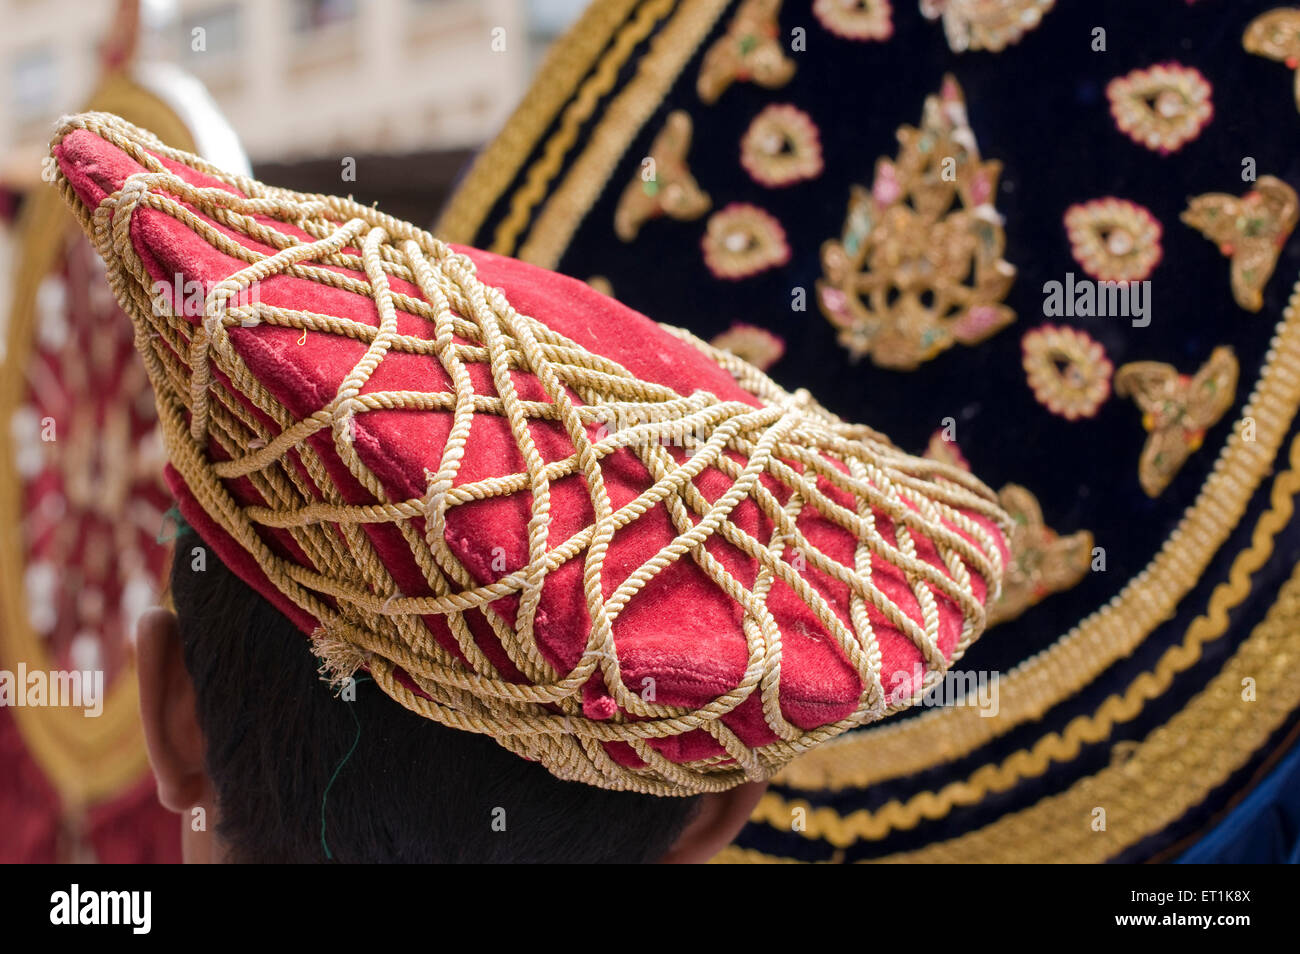 Red and golden stringed headgear Pune Maharashtra India Asia Sept 2011 - Stock Image